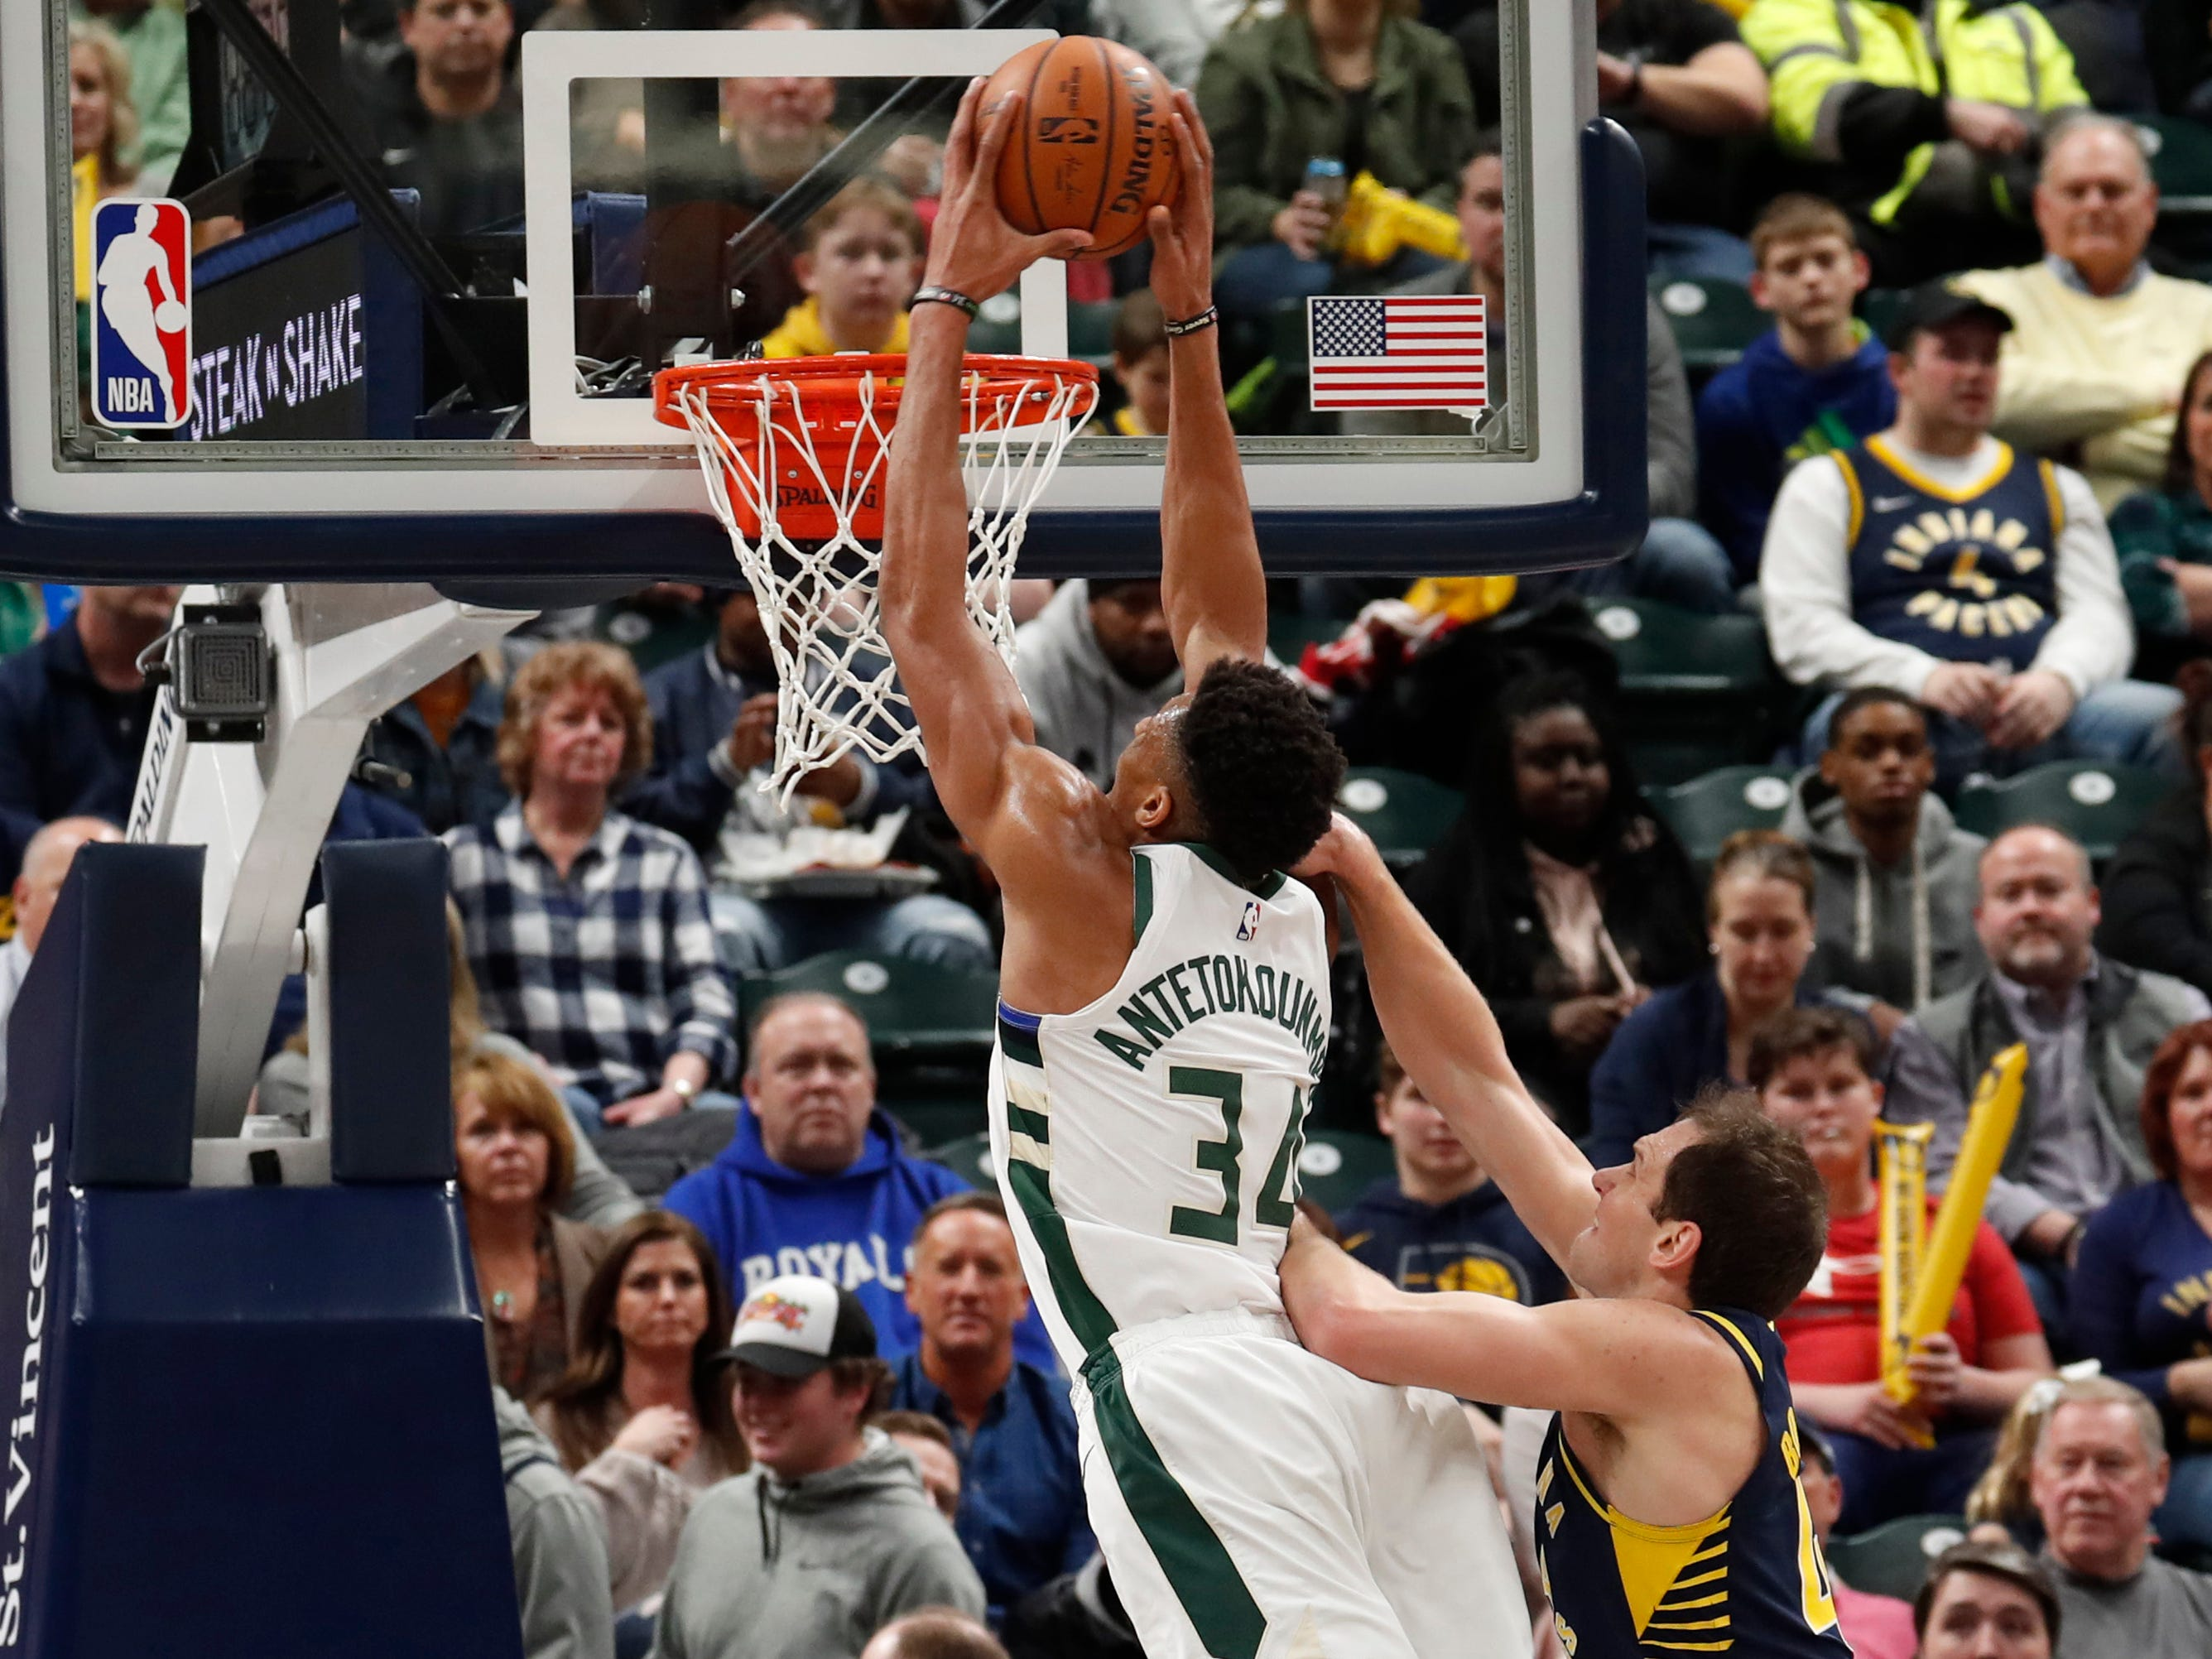 Feb. 13: Bucks forward Giannis Antetokounmpo (34) throws down the two-handed flush against Pacers defender Bojan Bogdanovic (44) in Indianapolis.